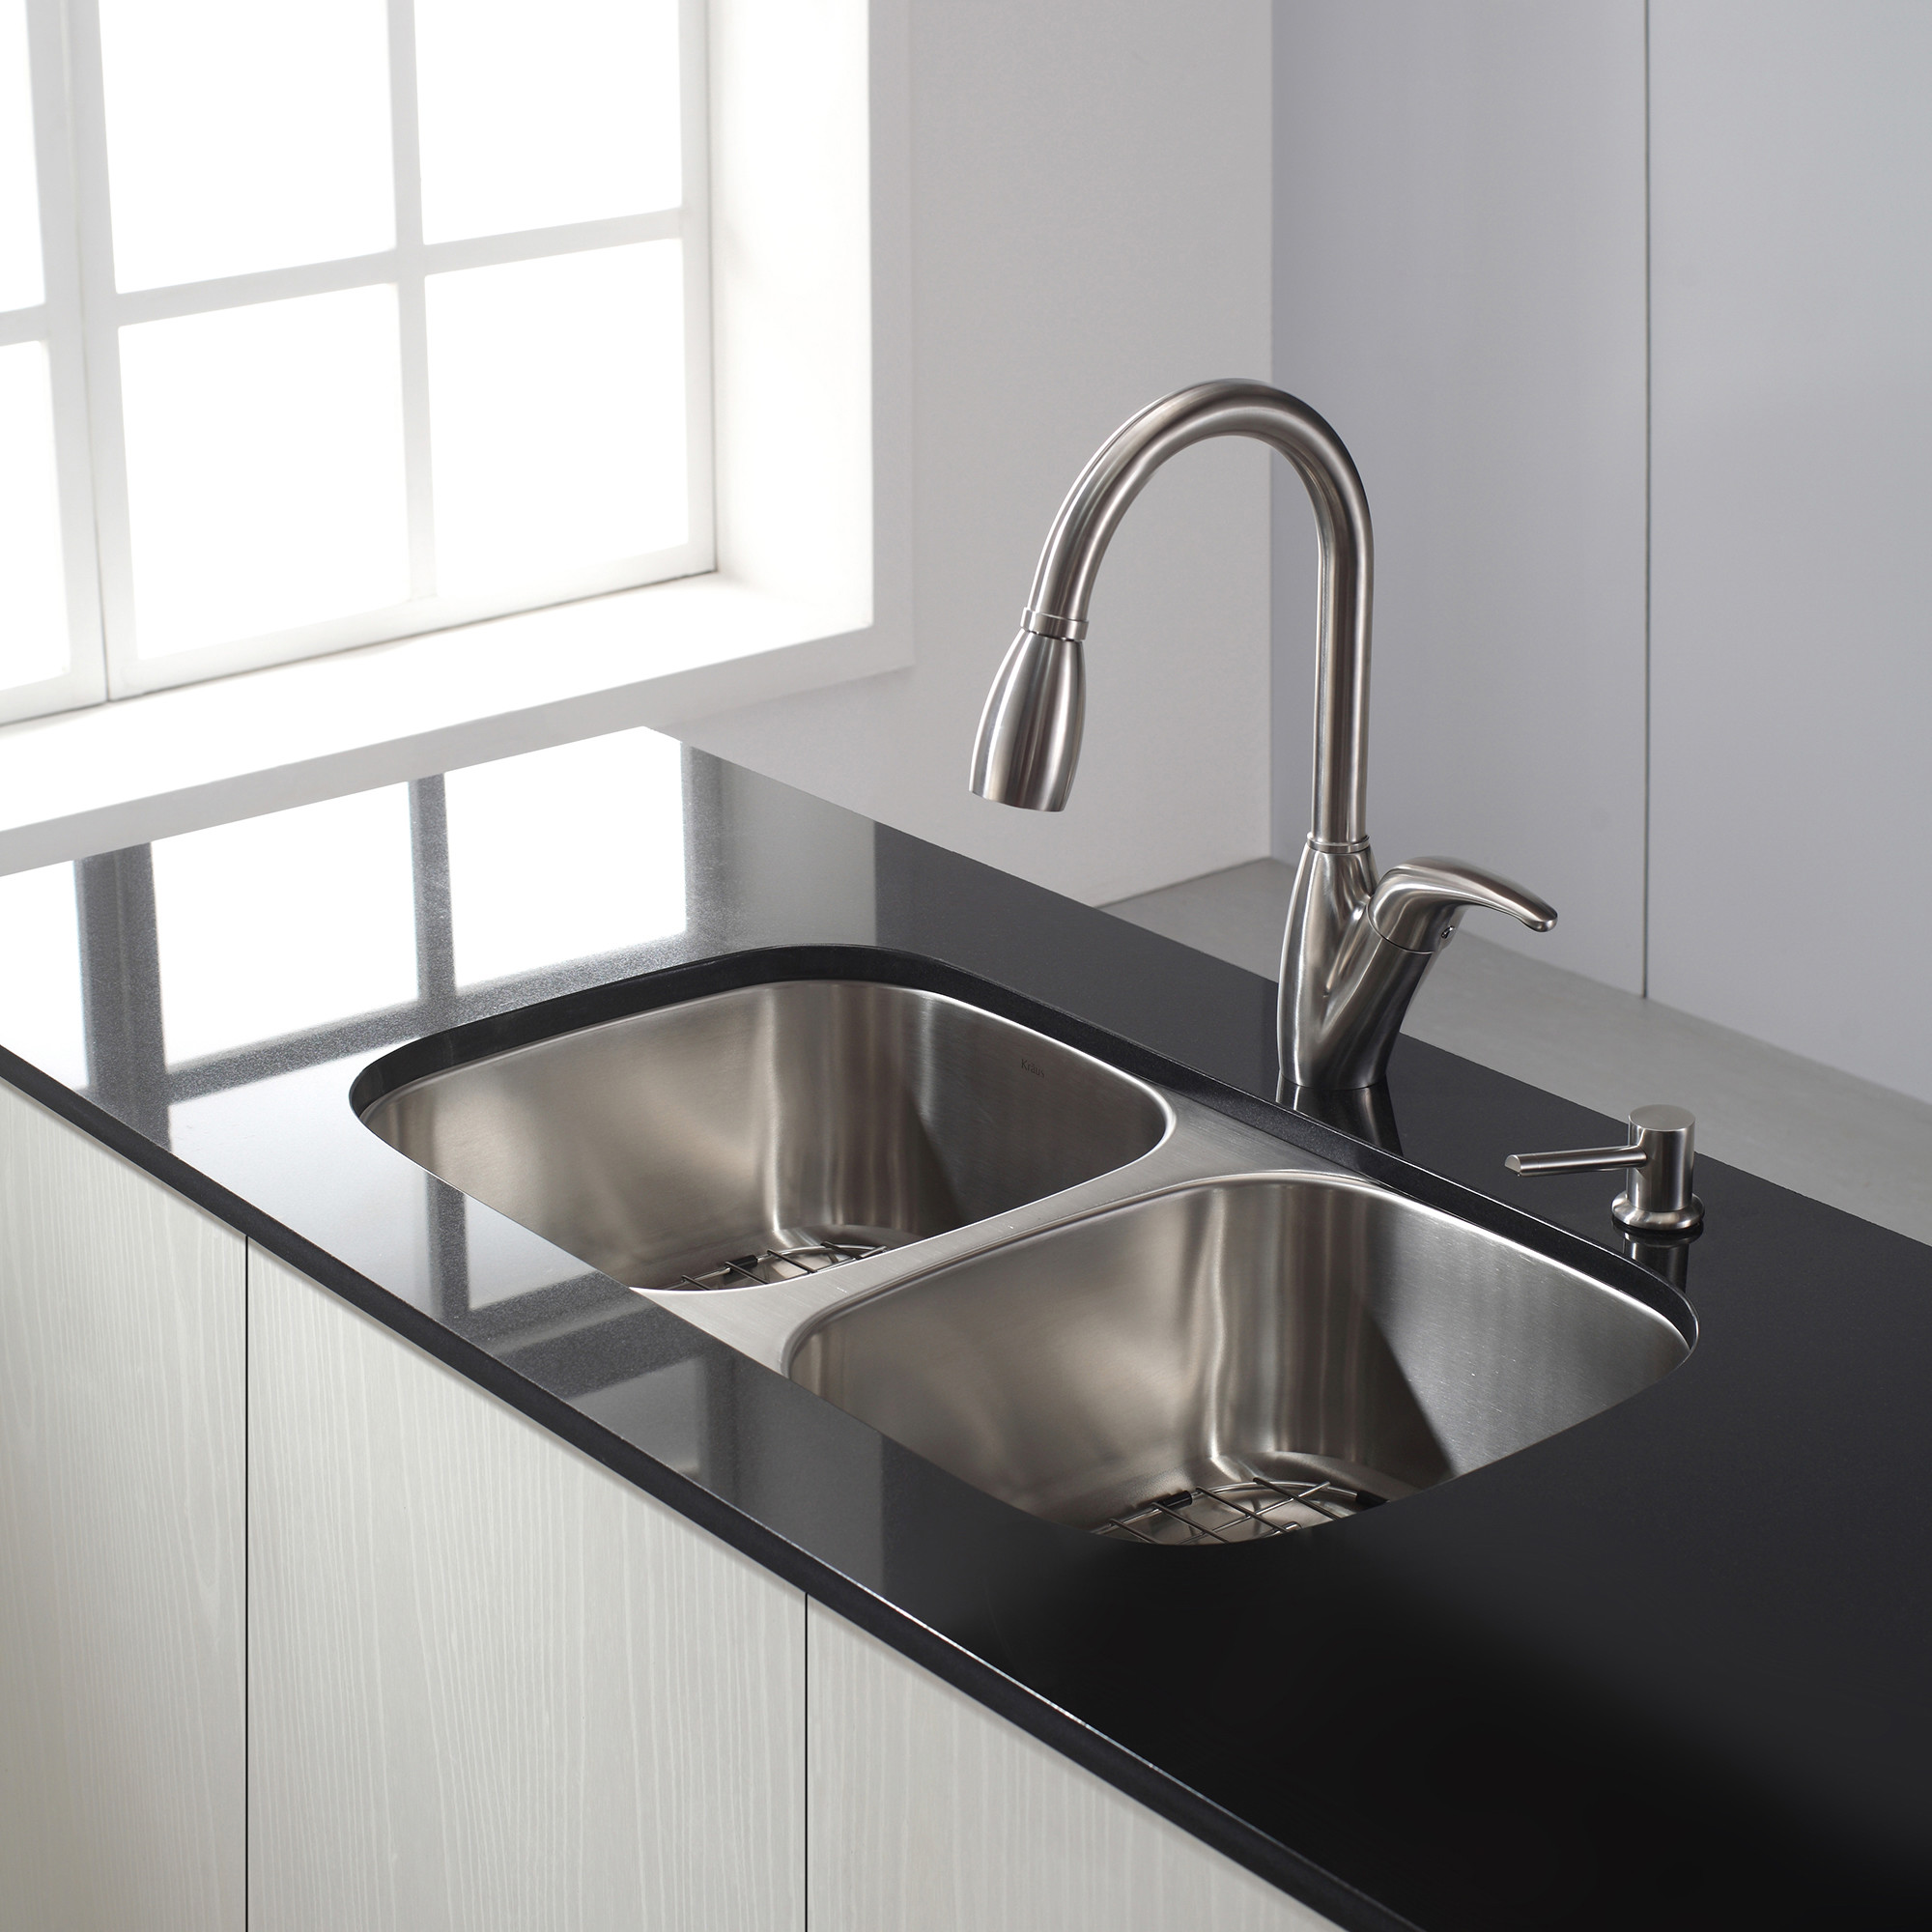 kraus-undermount-33-double-bowl-50-50-kitchen-sink-kbu22